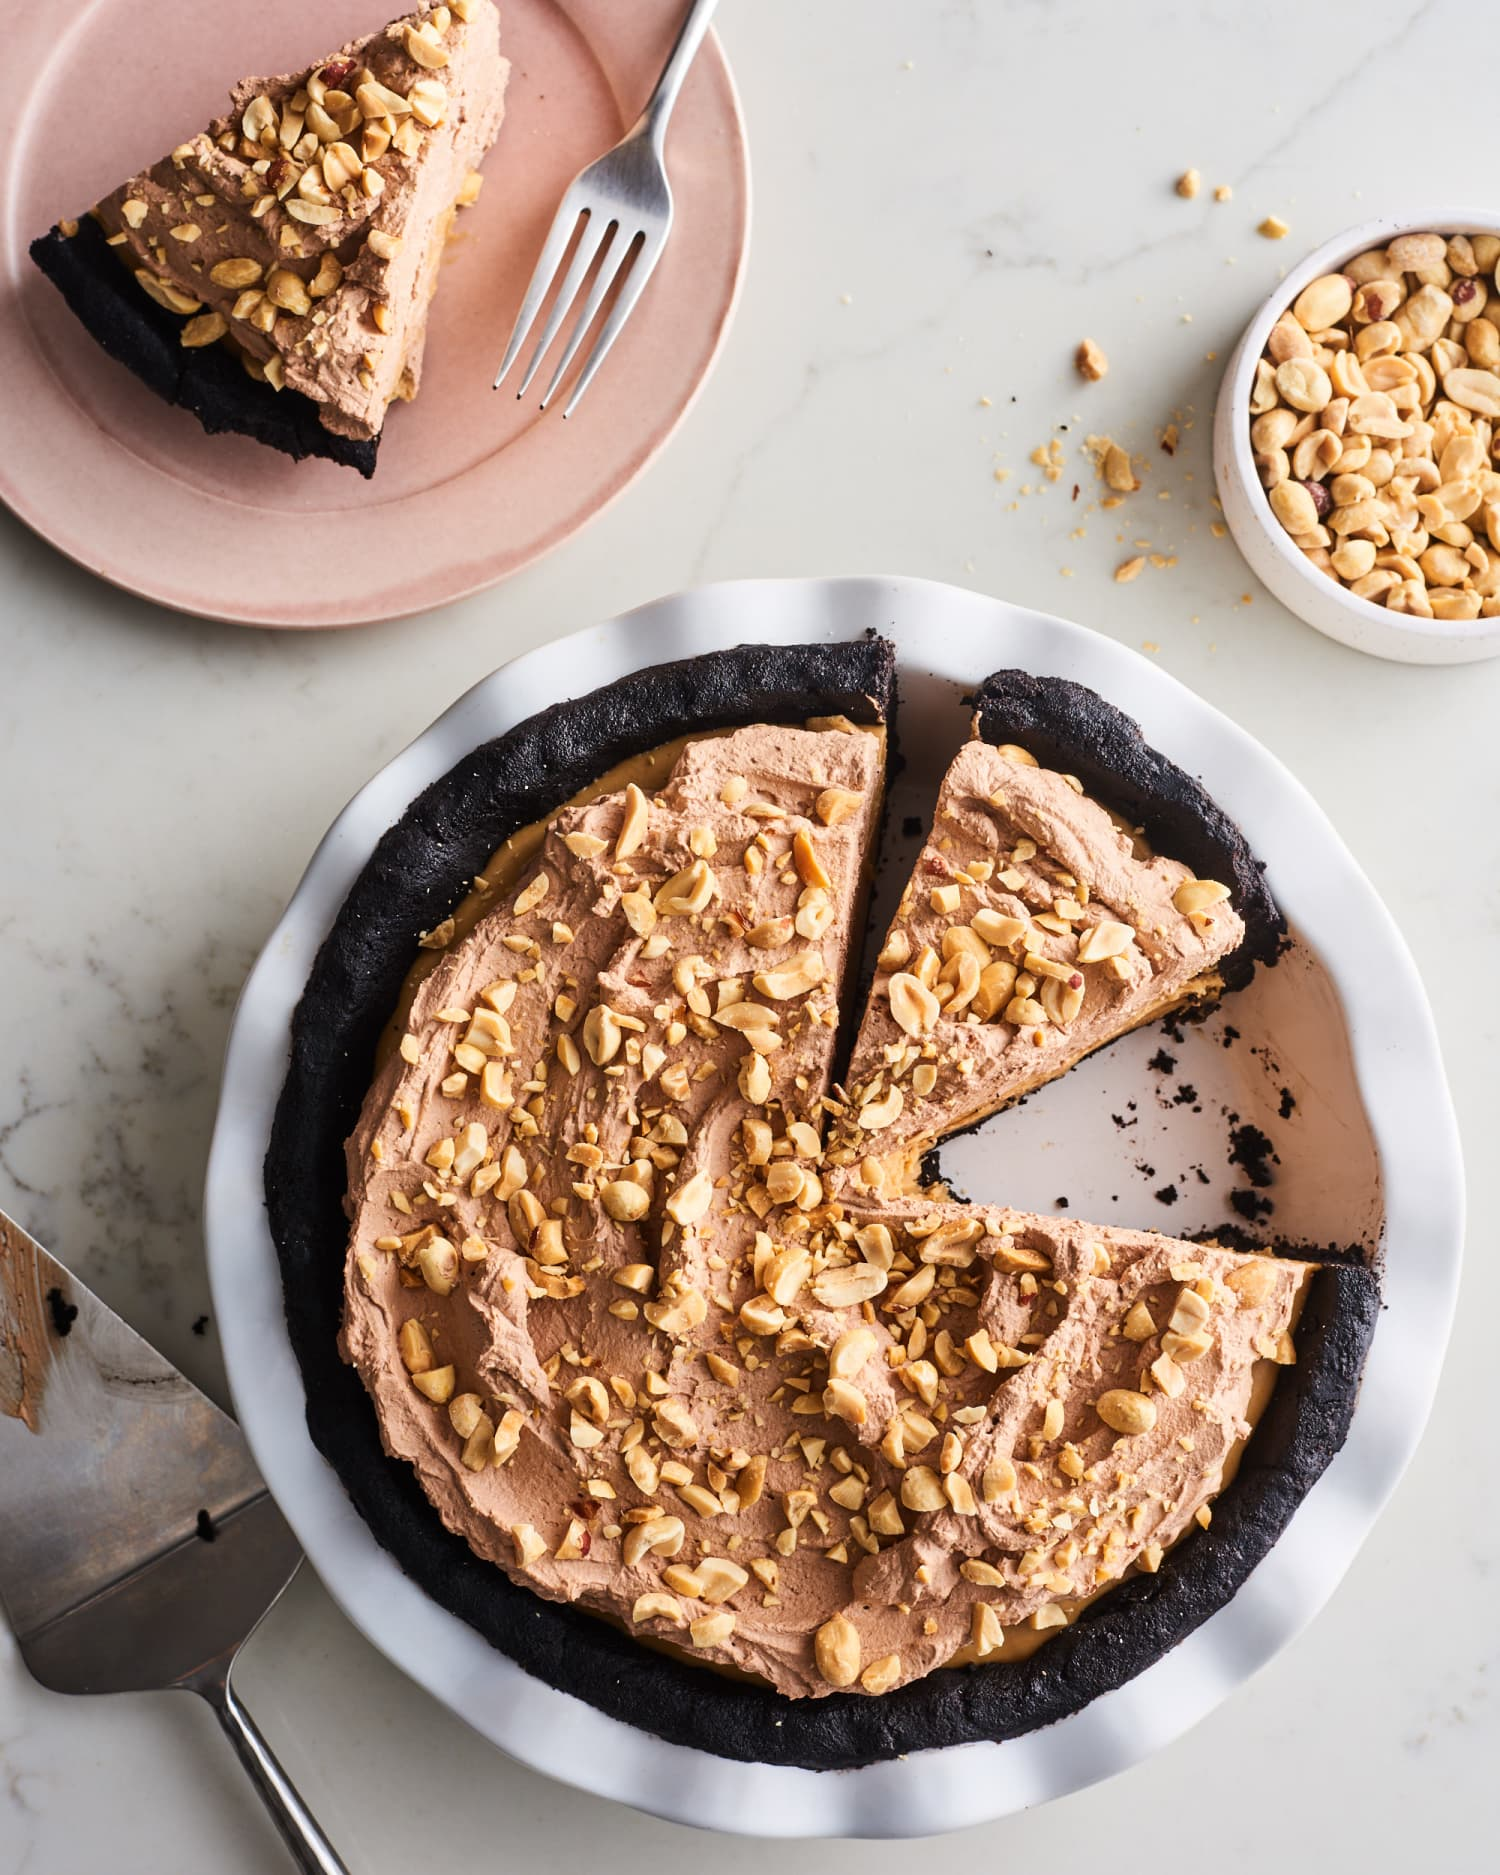 If You Can Push a Button, You Can Whip Up This One-Bowl No-Bake Peanut Butter Pie